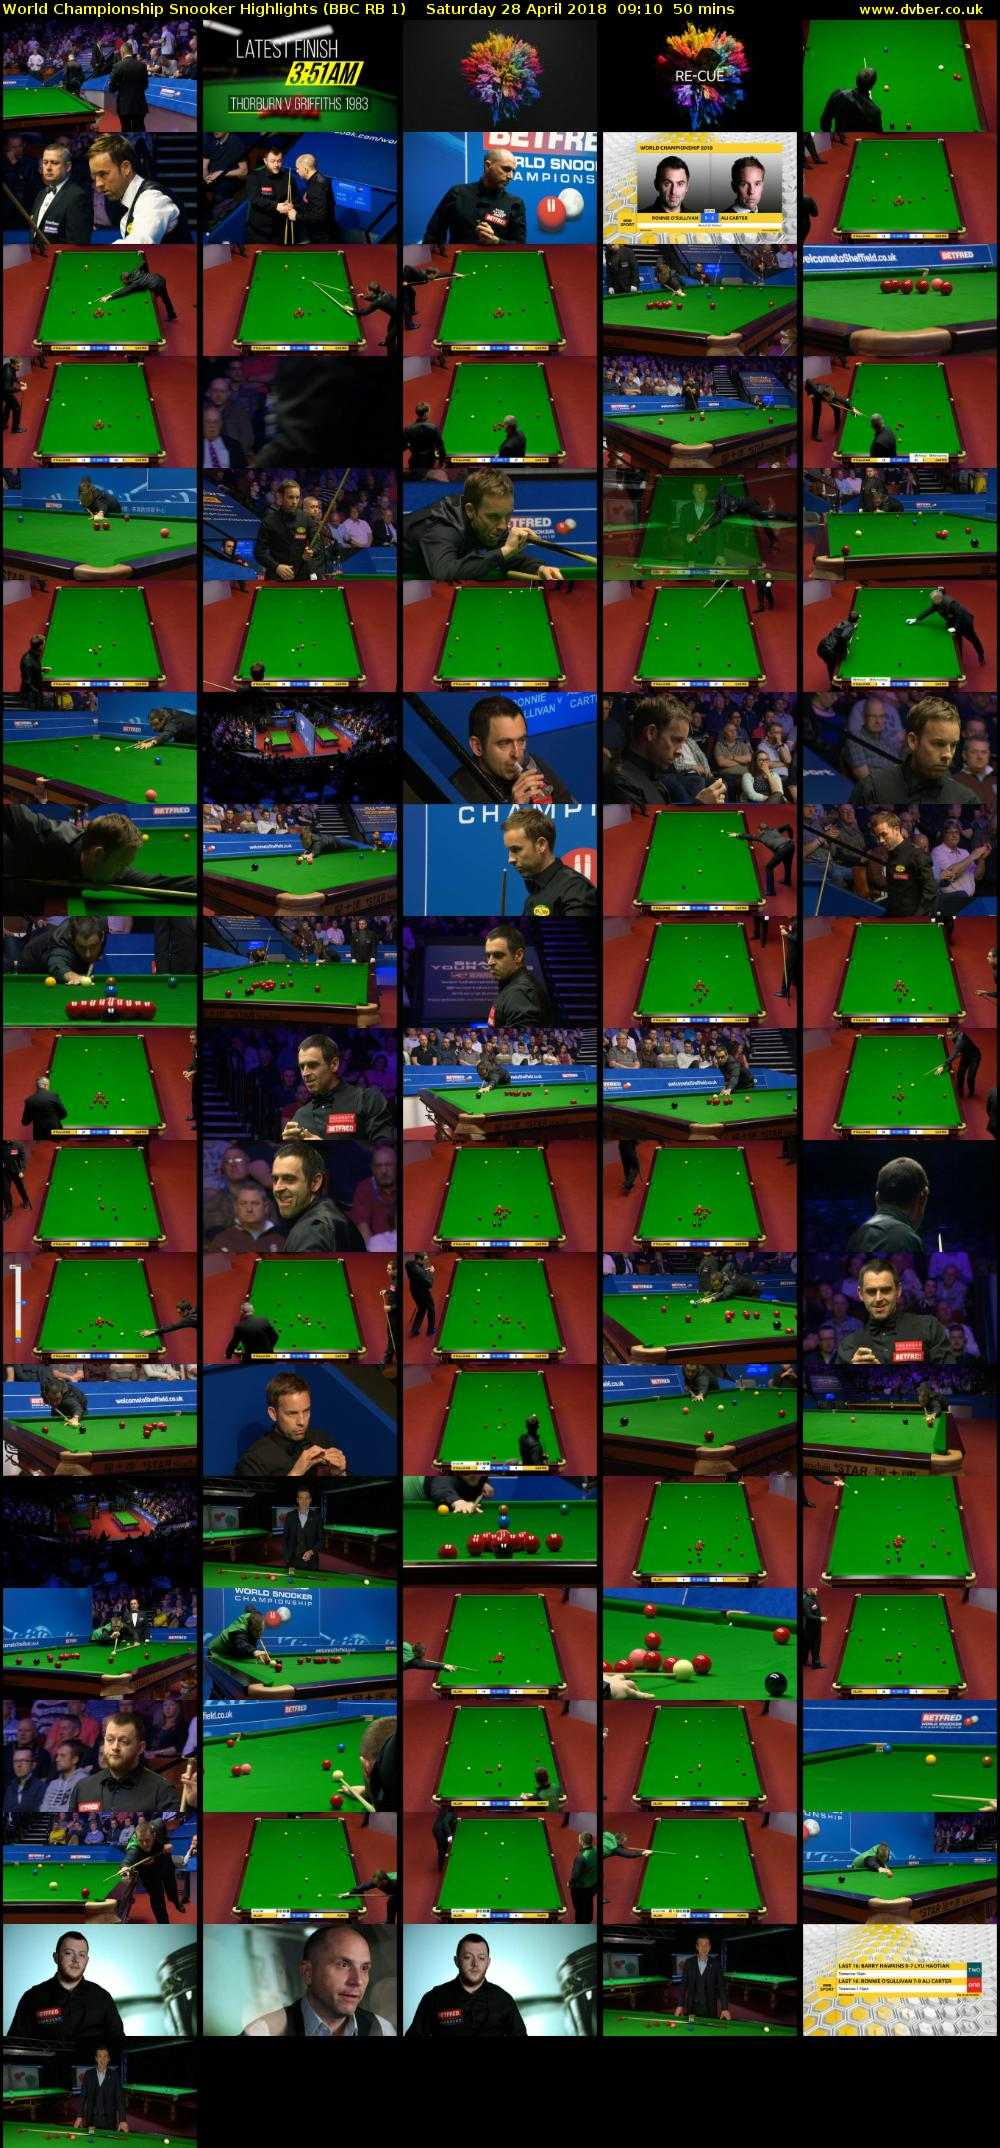 World Championship Snooker Highlights (BBC RB 1) Saturday 28 April 2018 09:10 - 10:00